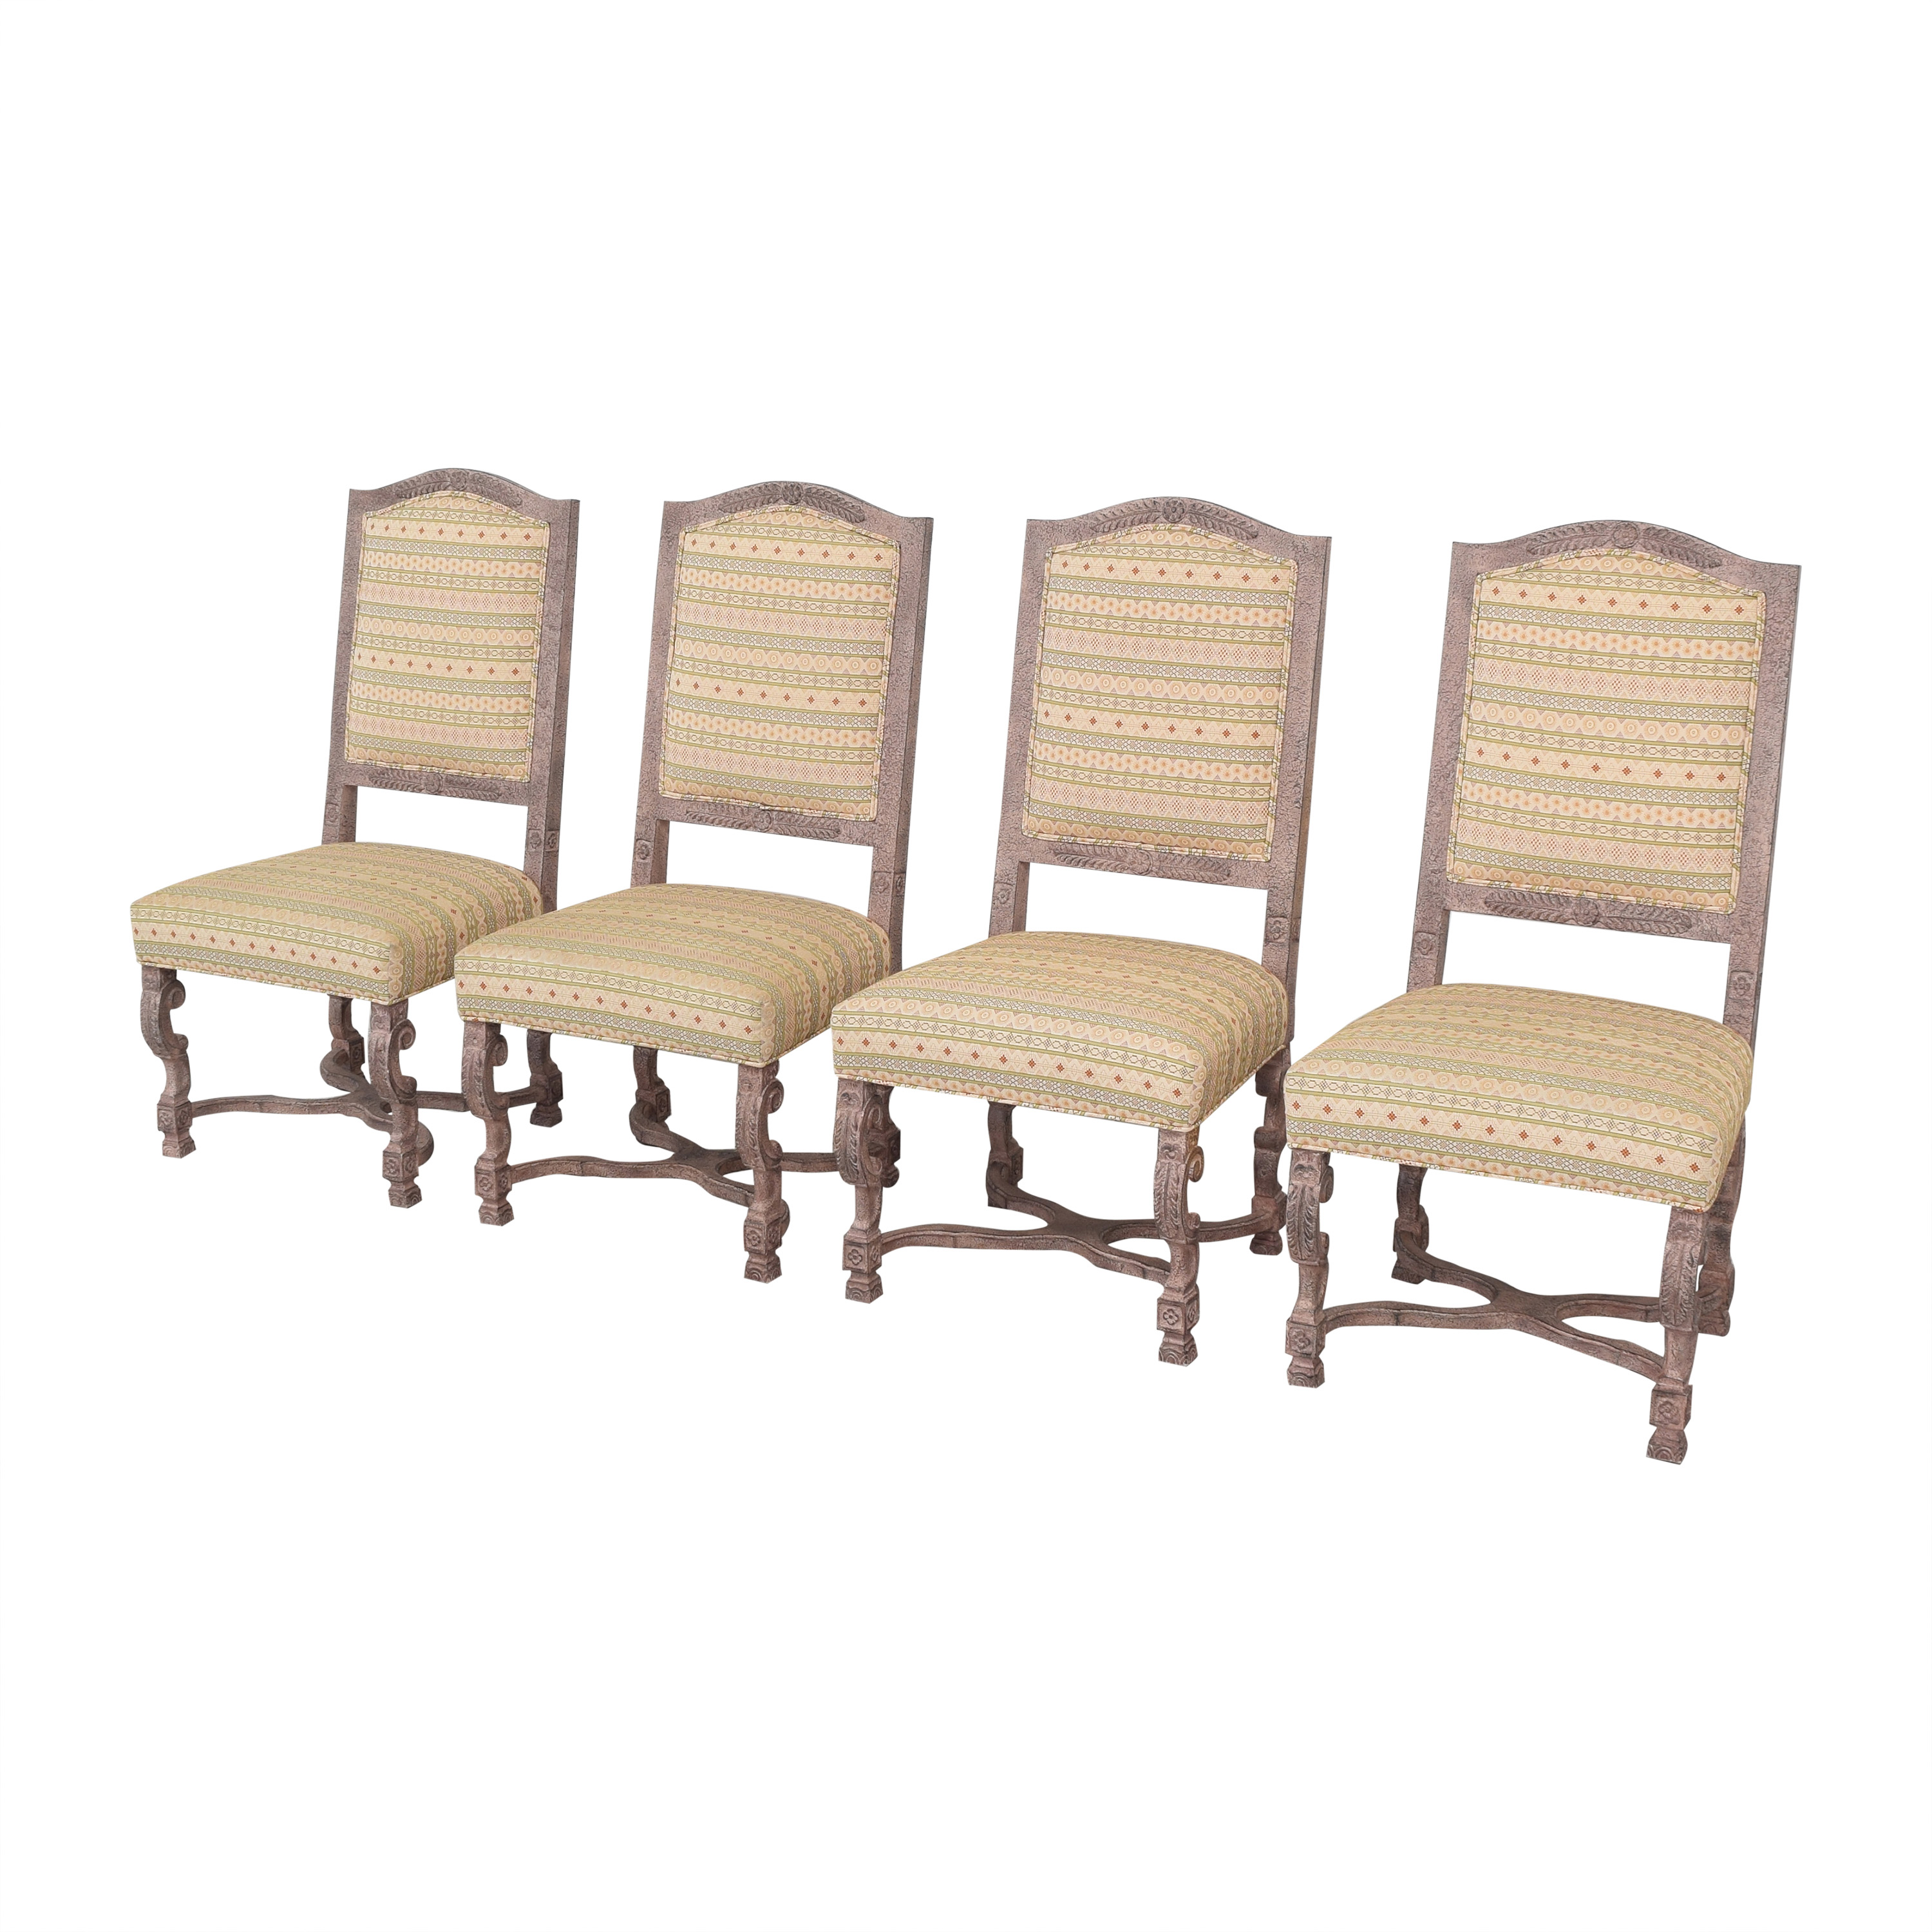 Artistic Frame Monarque Dining Chairs / Chairs